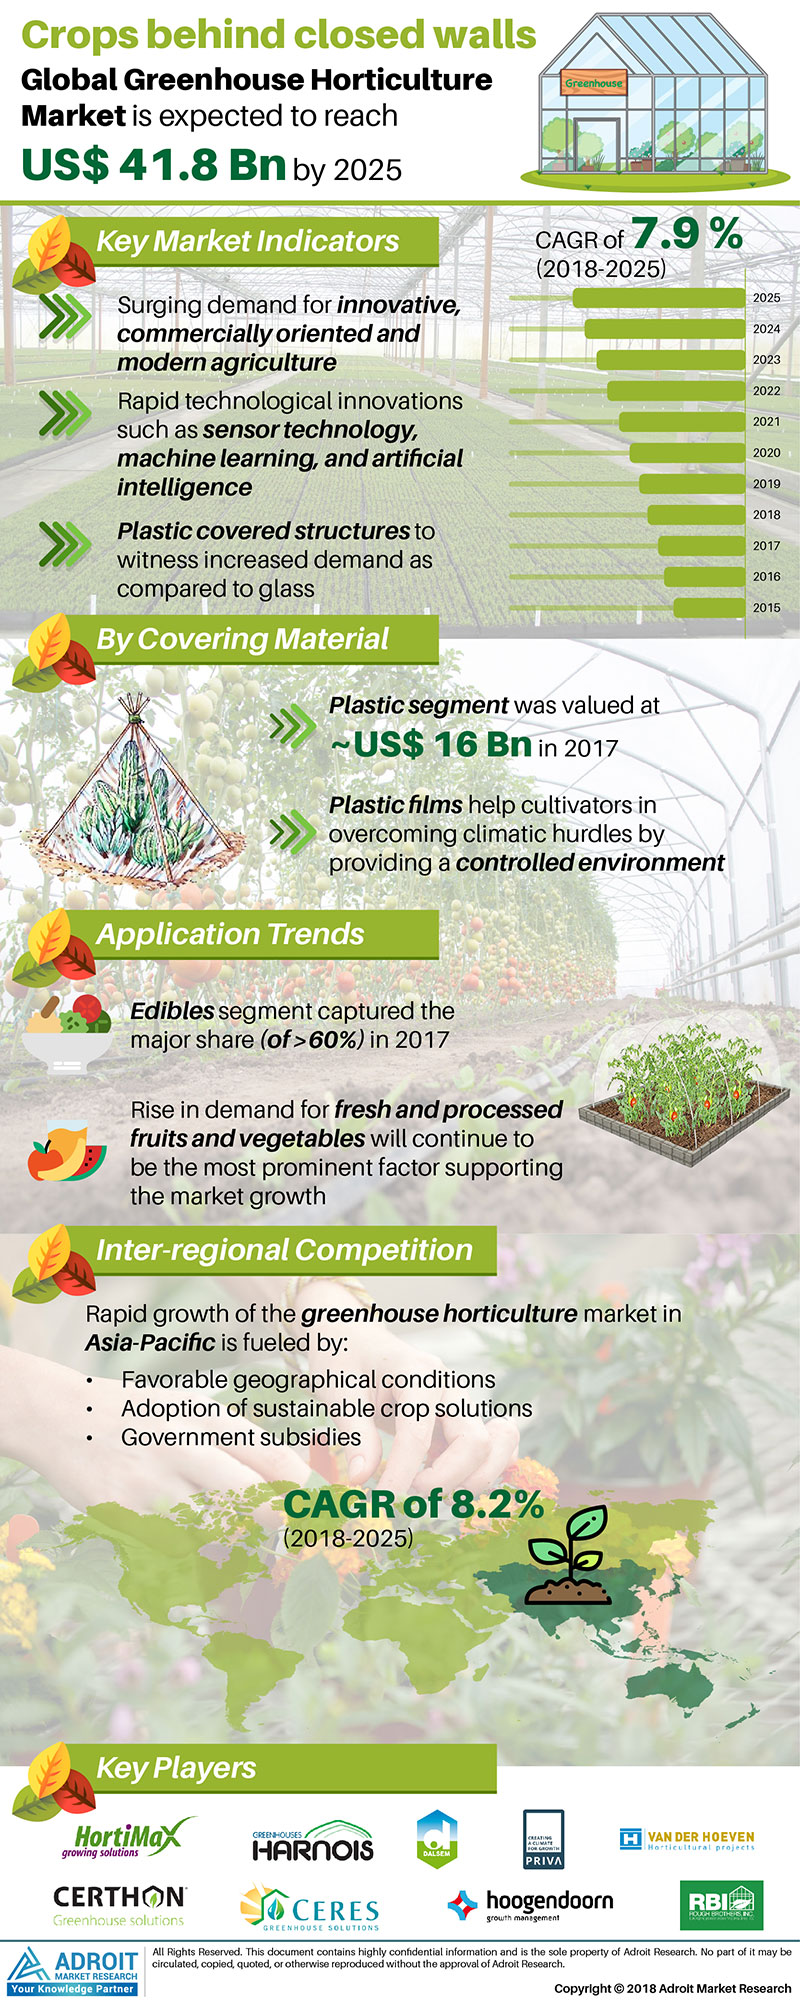 Greenhouse Horticulture Market Size 2017 by Covering Material, Application, Region and Forecast 2018 to 2025